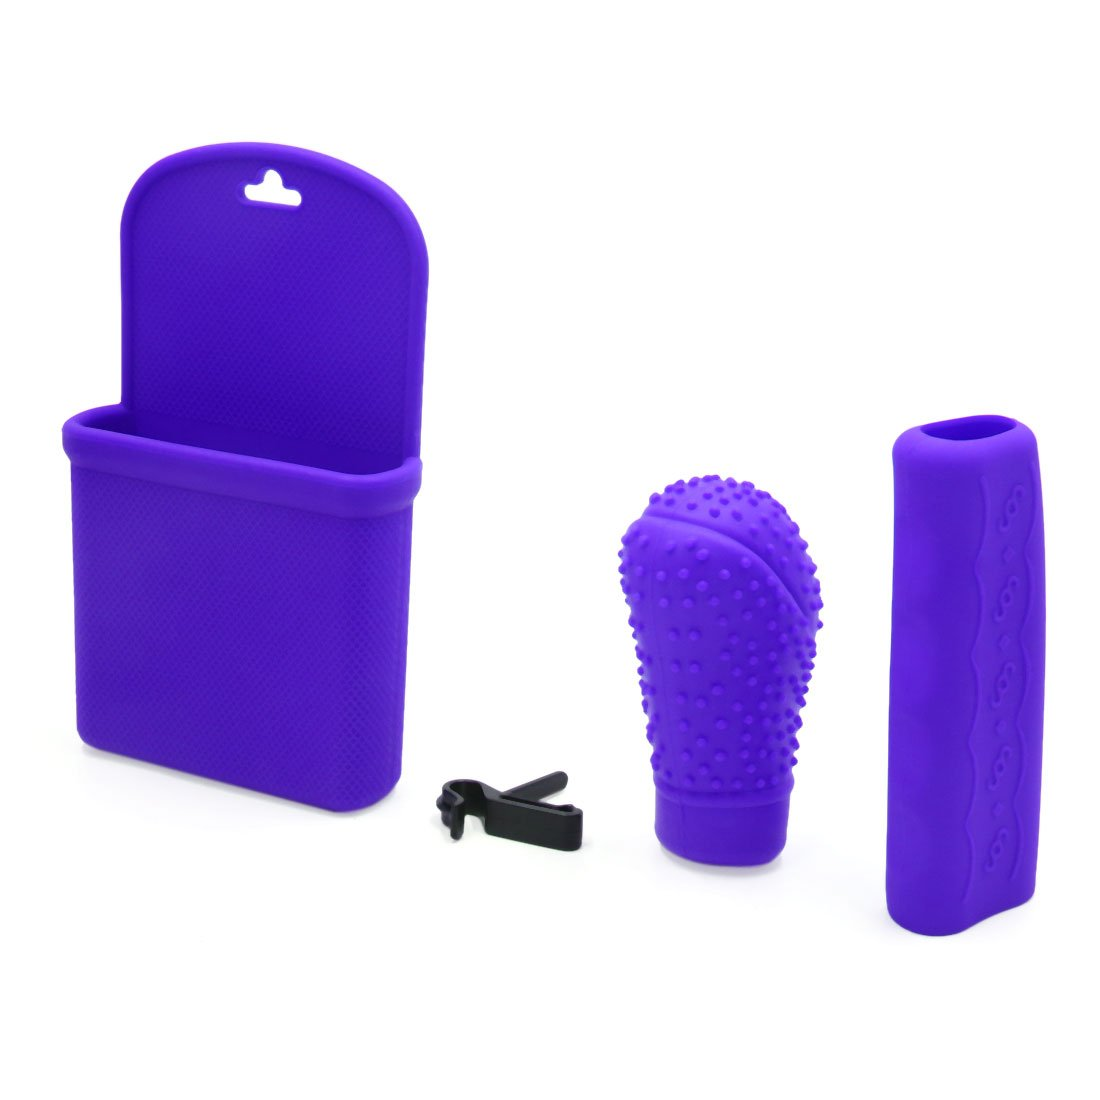 Uxcell 3 In 1 Purple Silicone Gear Shift Knob Hand Brake Cover Storage Box For Car